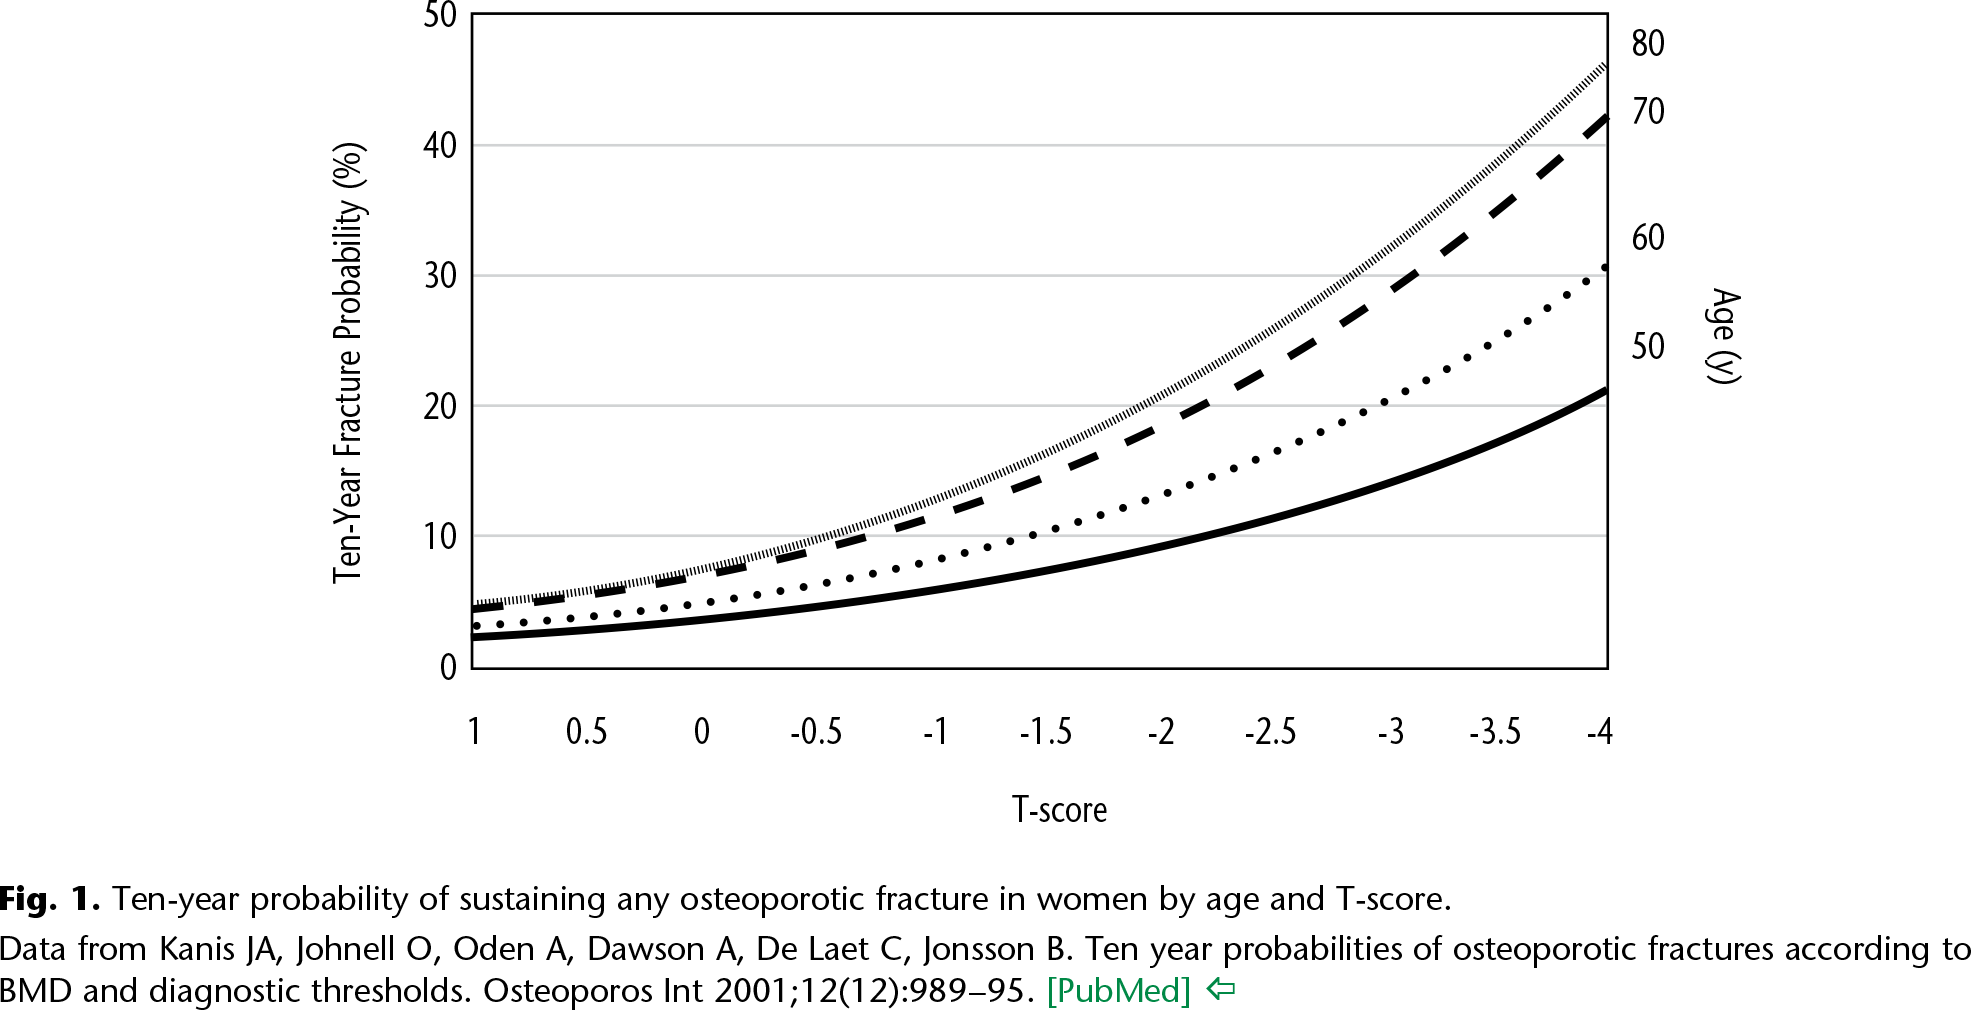 Fig. 1. Ten-year probability of sustaining any osteoporotic fracture in women by age and T-score.